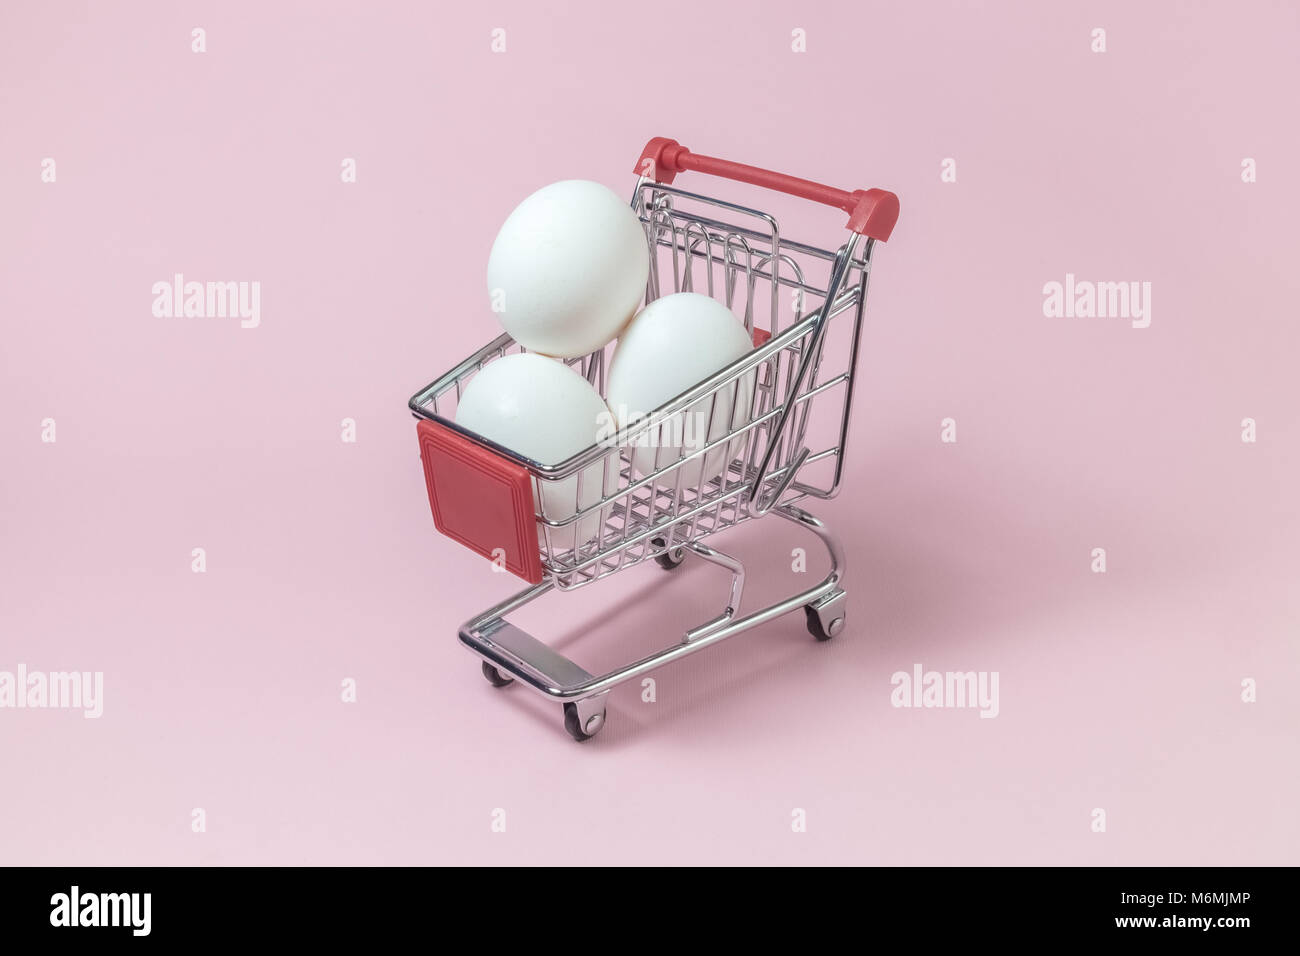 Shopping trolley model full of white eggs against pastel pink rose background minimal concept. Space for copy. - Stock Image